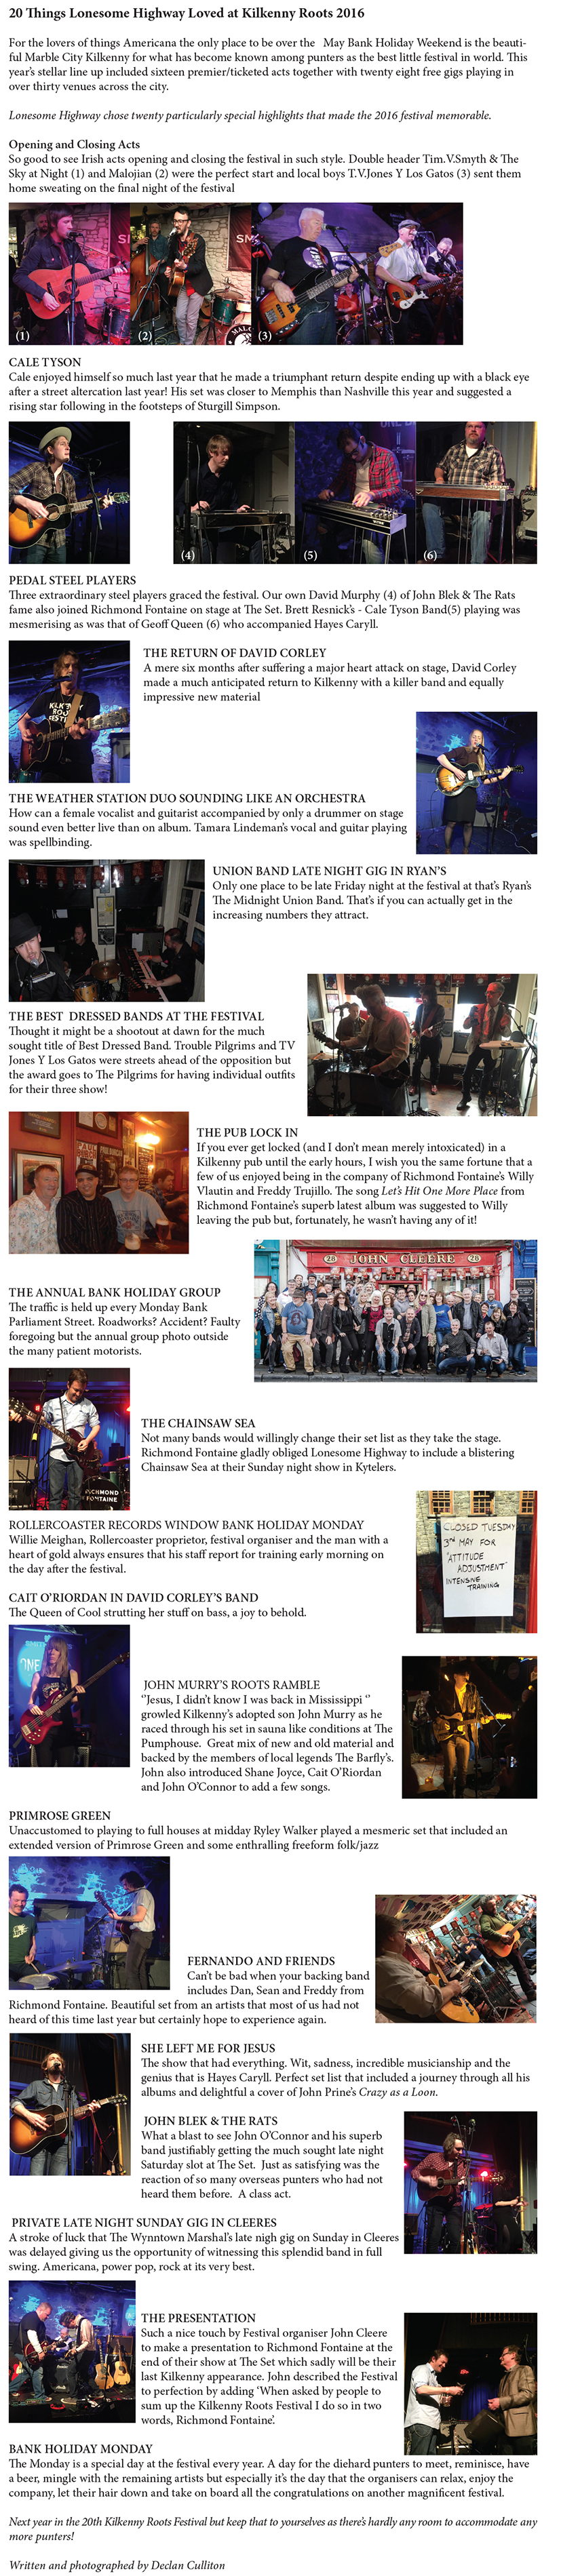 Kilkenny Rhythm & Roots 29th April-2nd May 2016 — Lonesome Highway